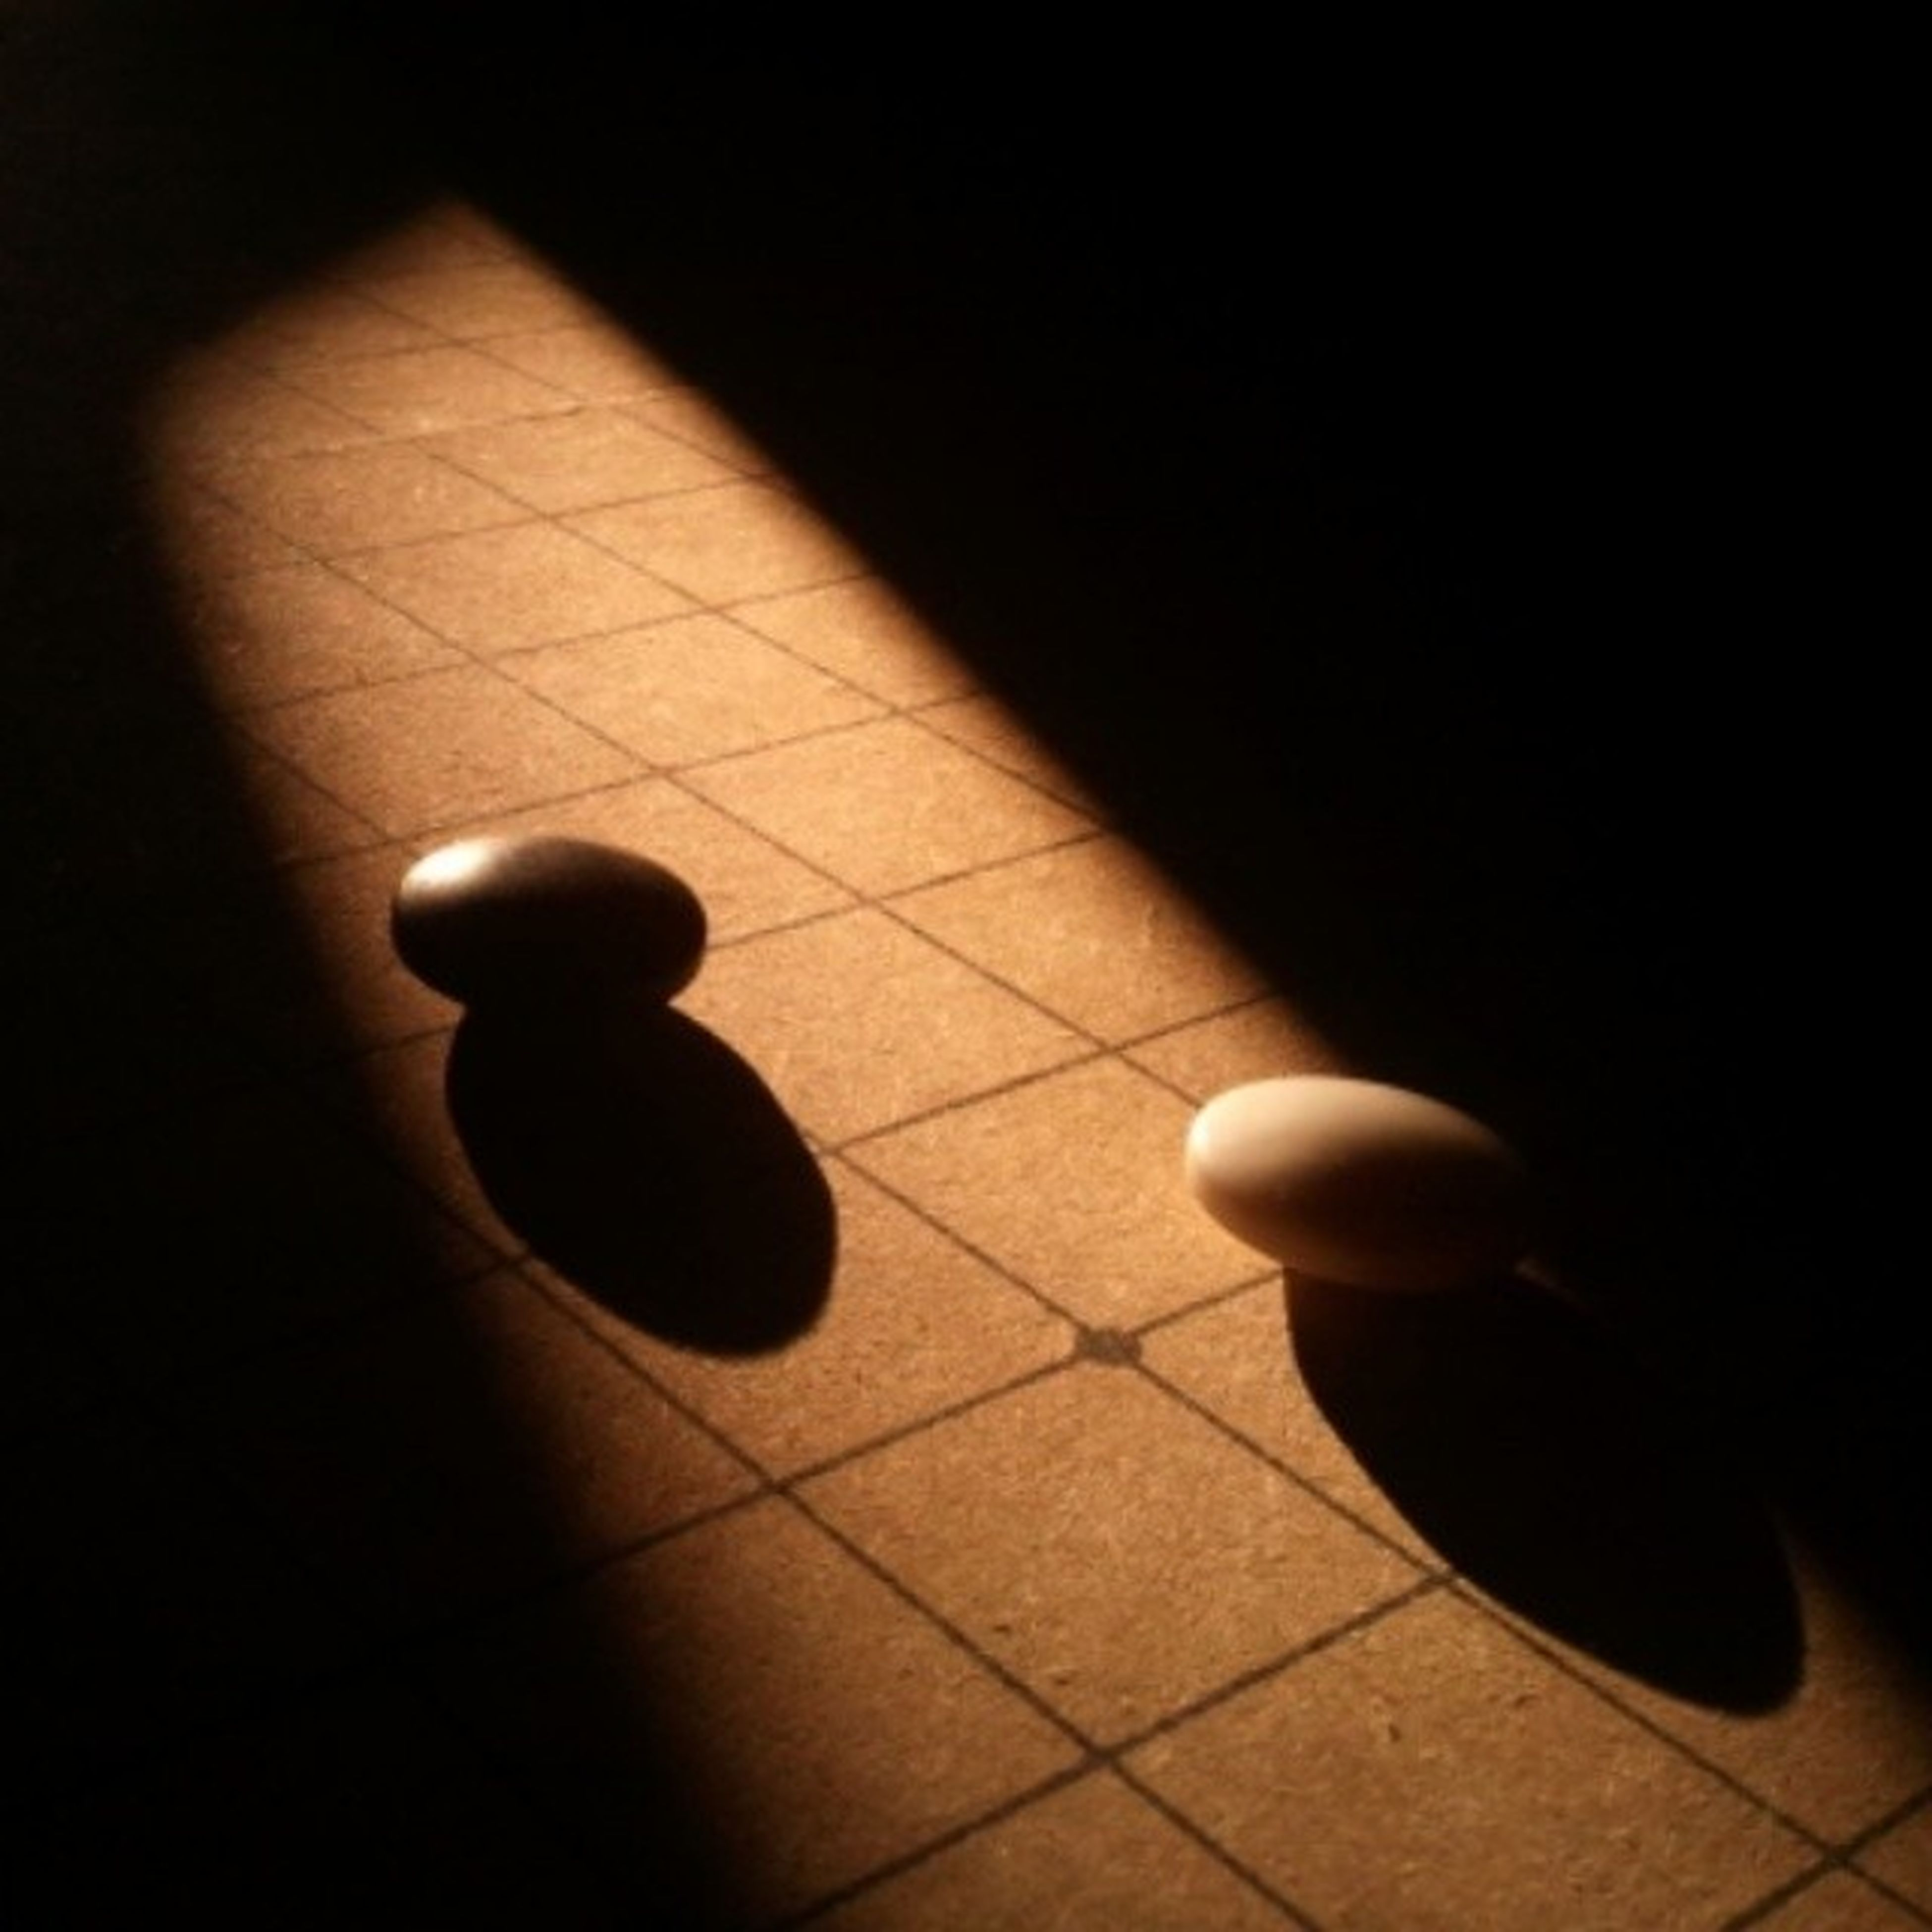 indoors, tiled floor, flooring, shadow, high angle view, floor, sunlight, hardwood floor, no people, tile, wall - building feature, pattern, empty, home interior, paving stone, table, copy space, night, absence, still life